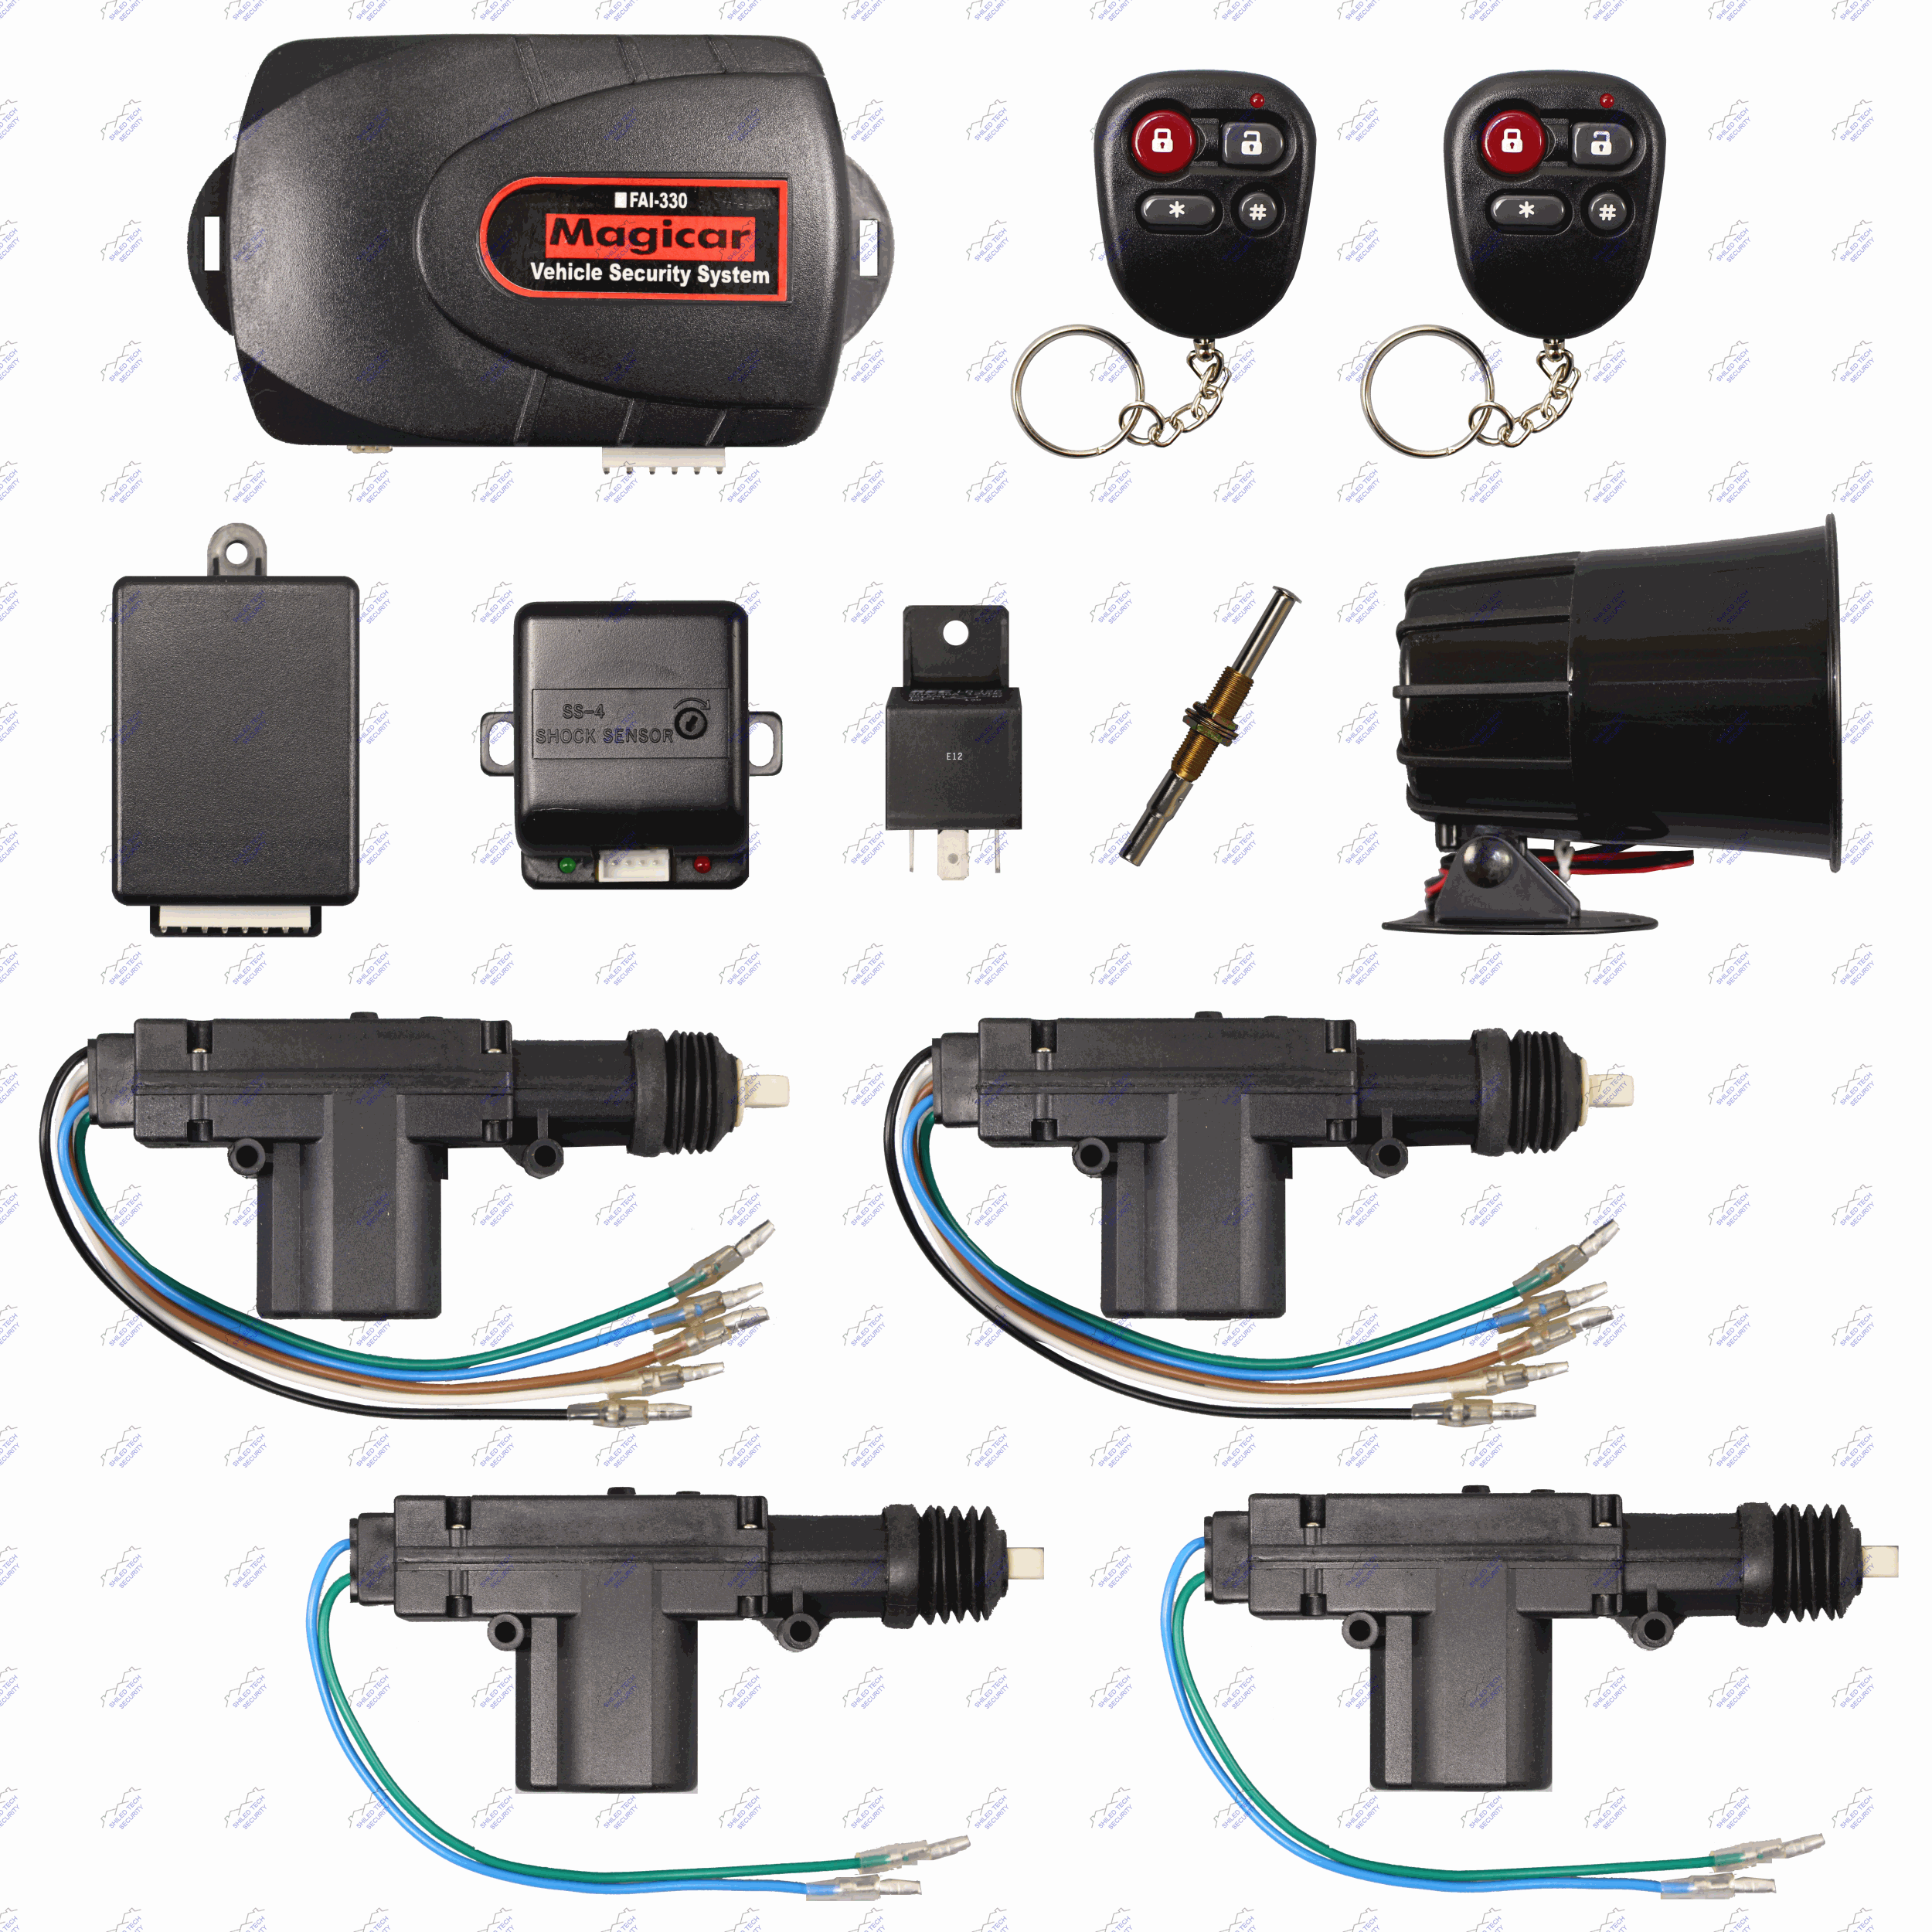 fai 330 586 main picture1 x2500 remote car alarm keyless entry security 4 door power lock  at soozxer.org